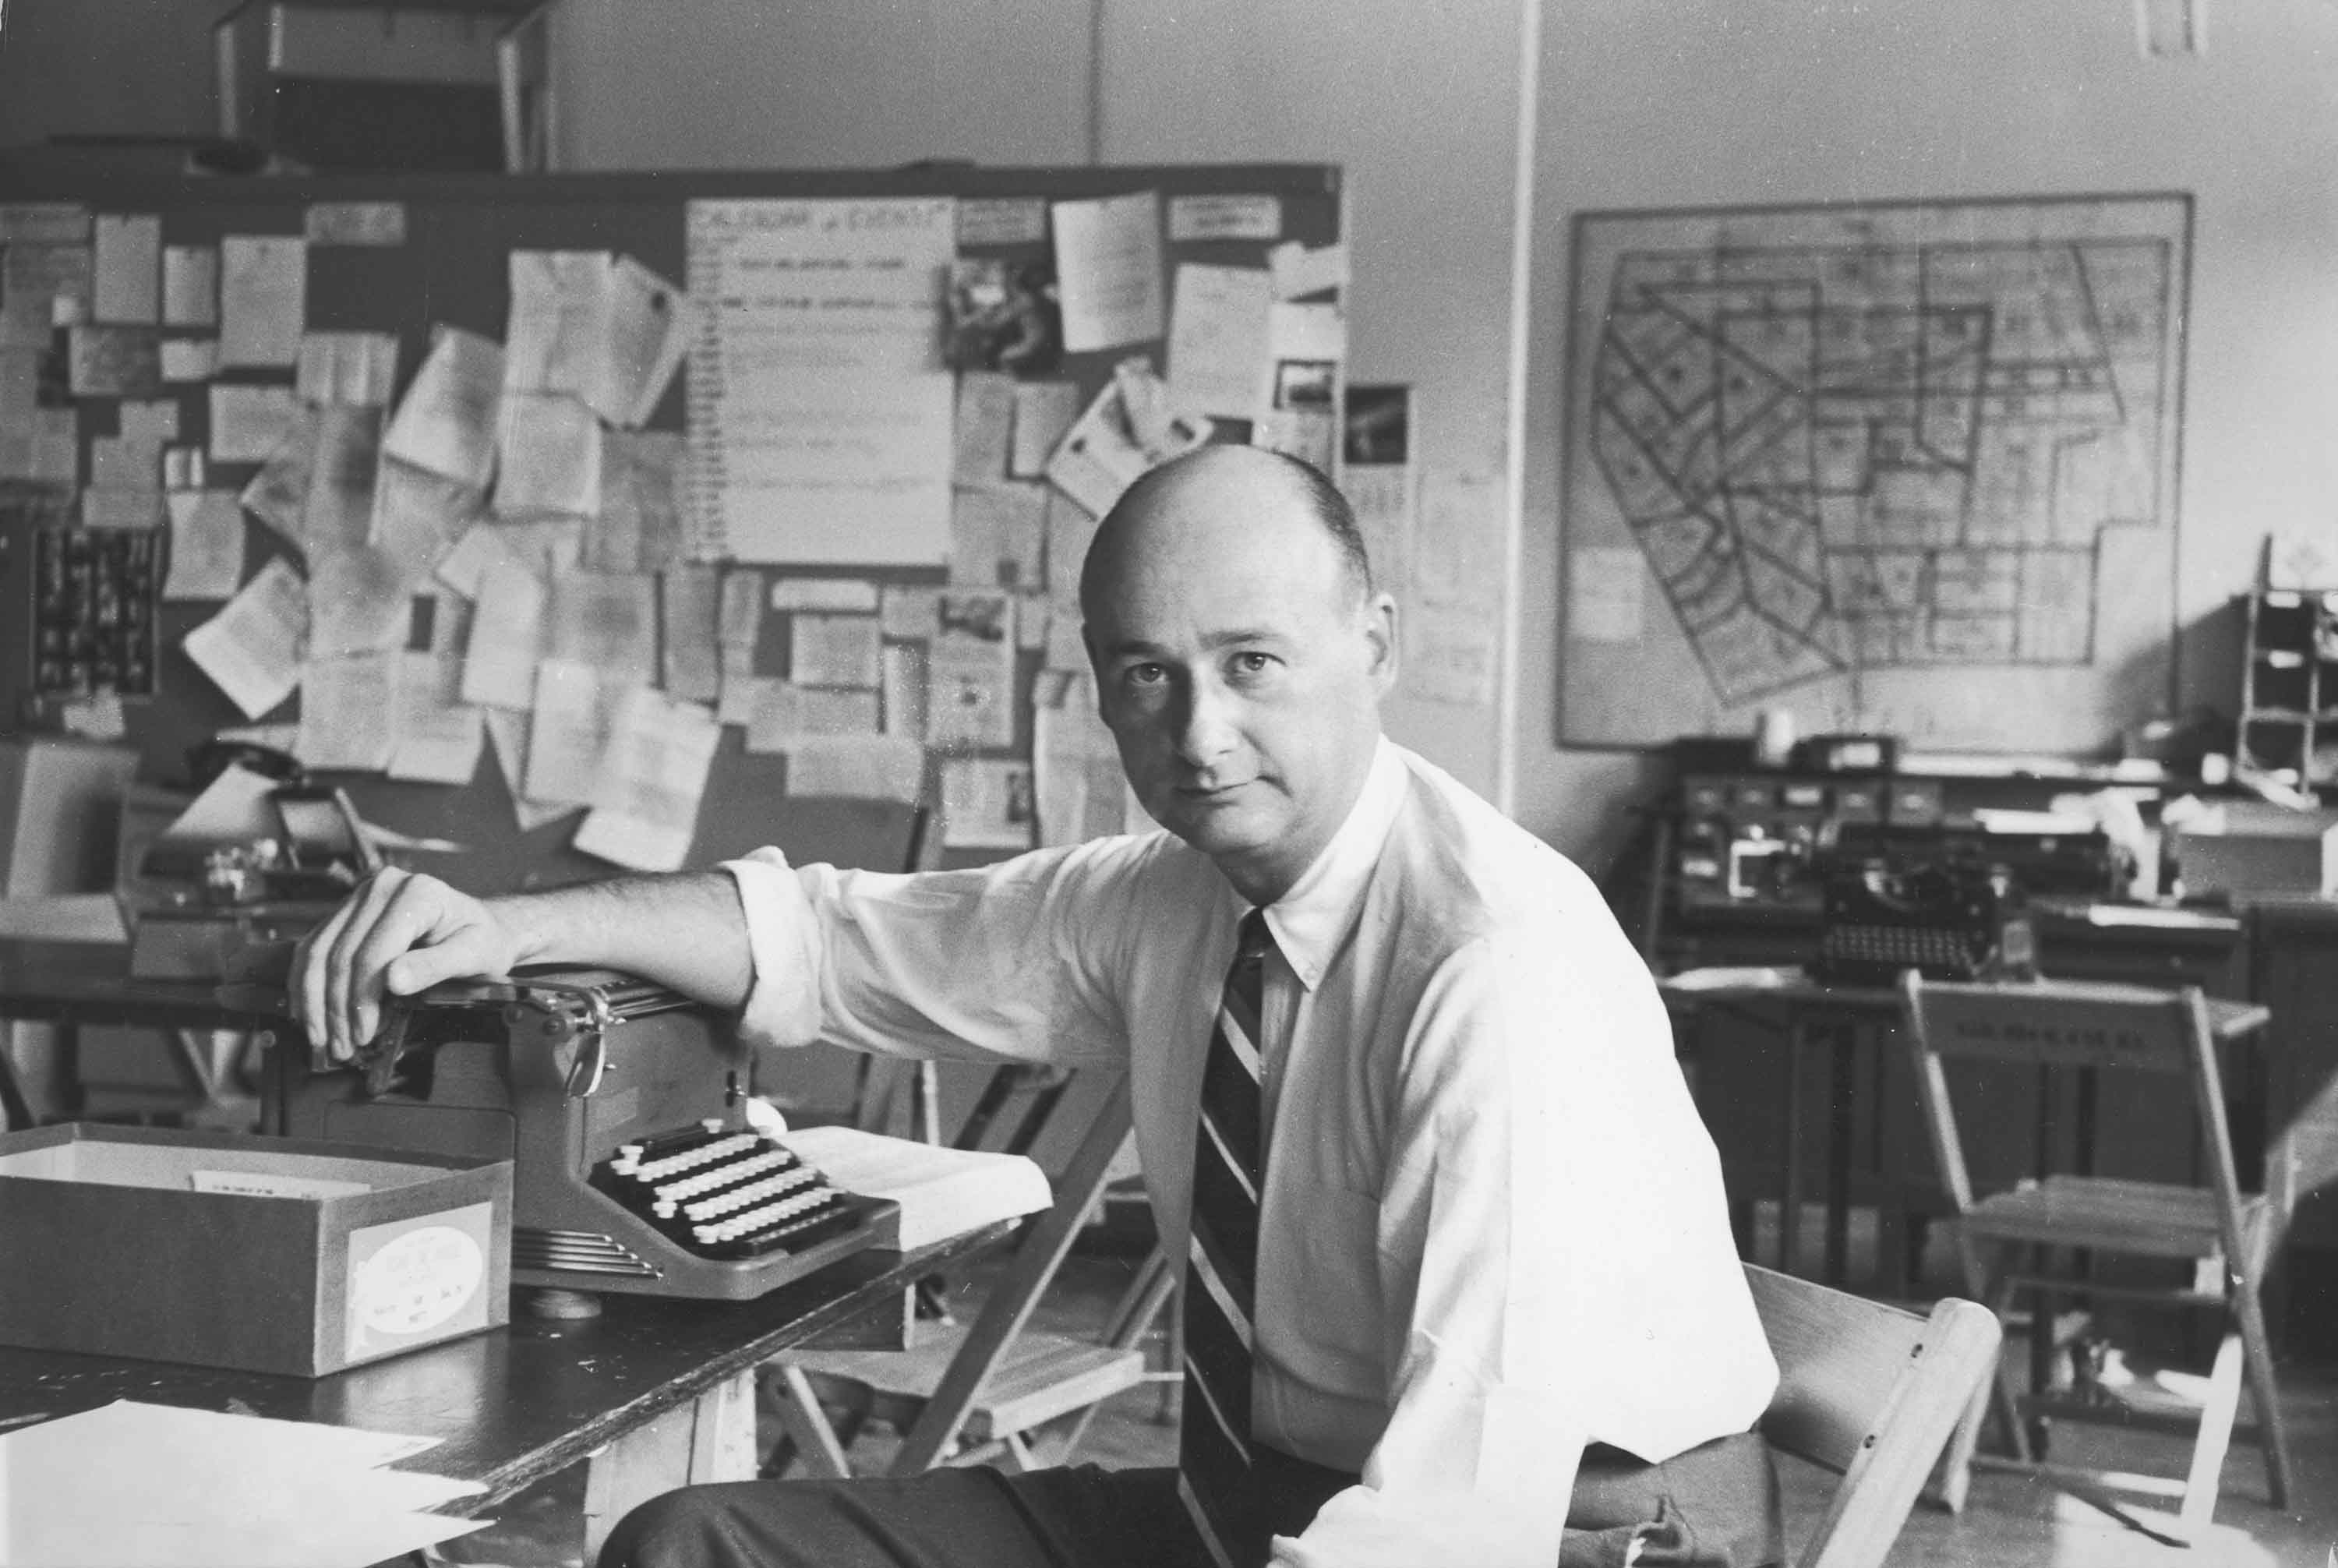 Ed Koch in the Democratic Office at Sheridan Square, NYC, August 24, 1963